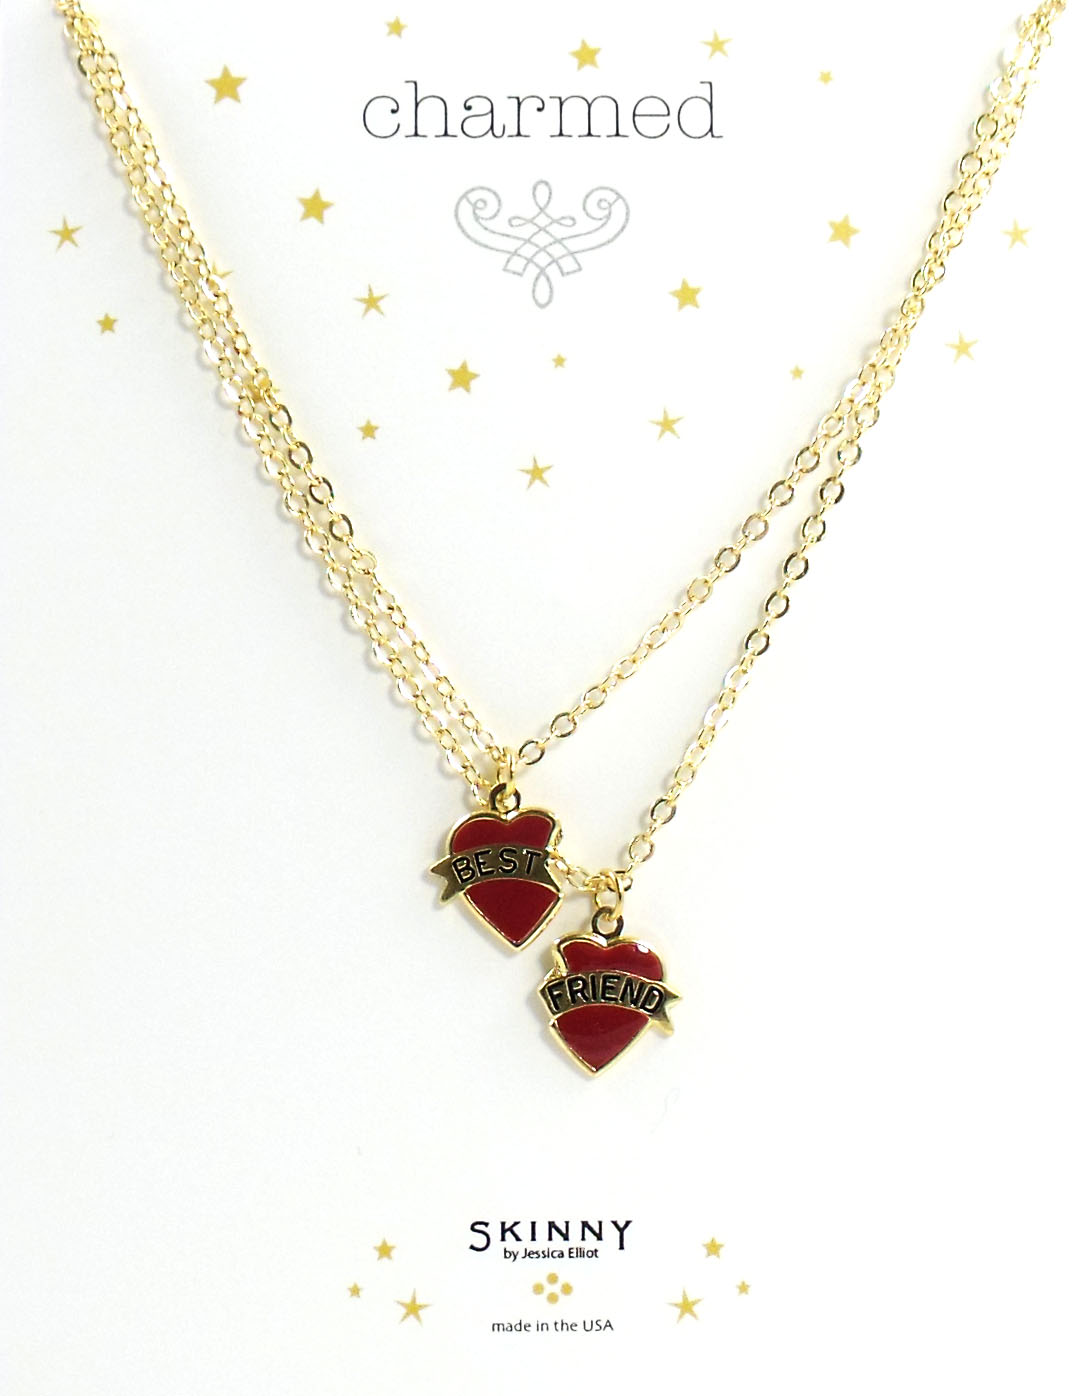 Skinny Jewelry Best Friends Heart Charm Necklaces Red, by Jessic